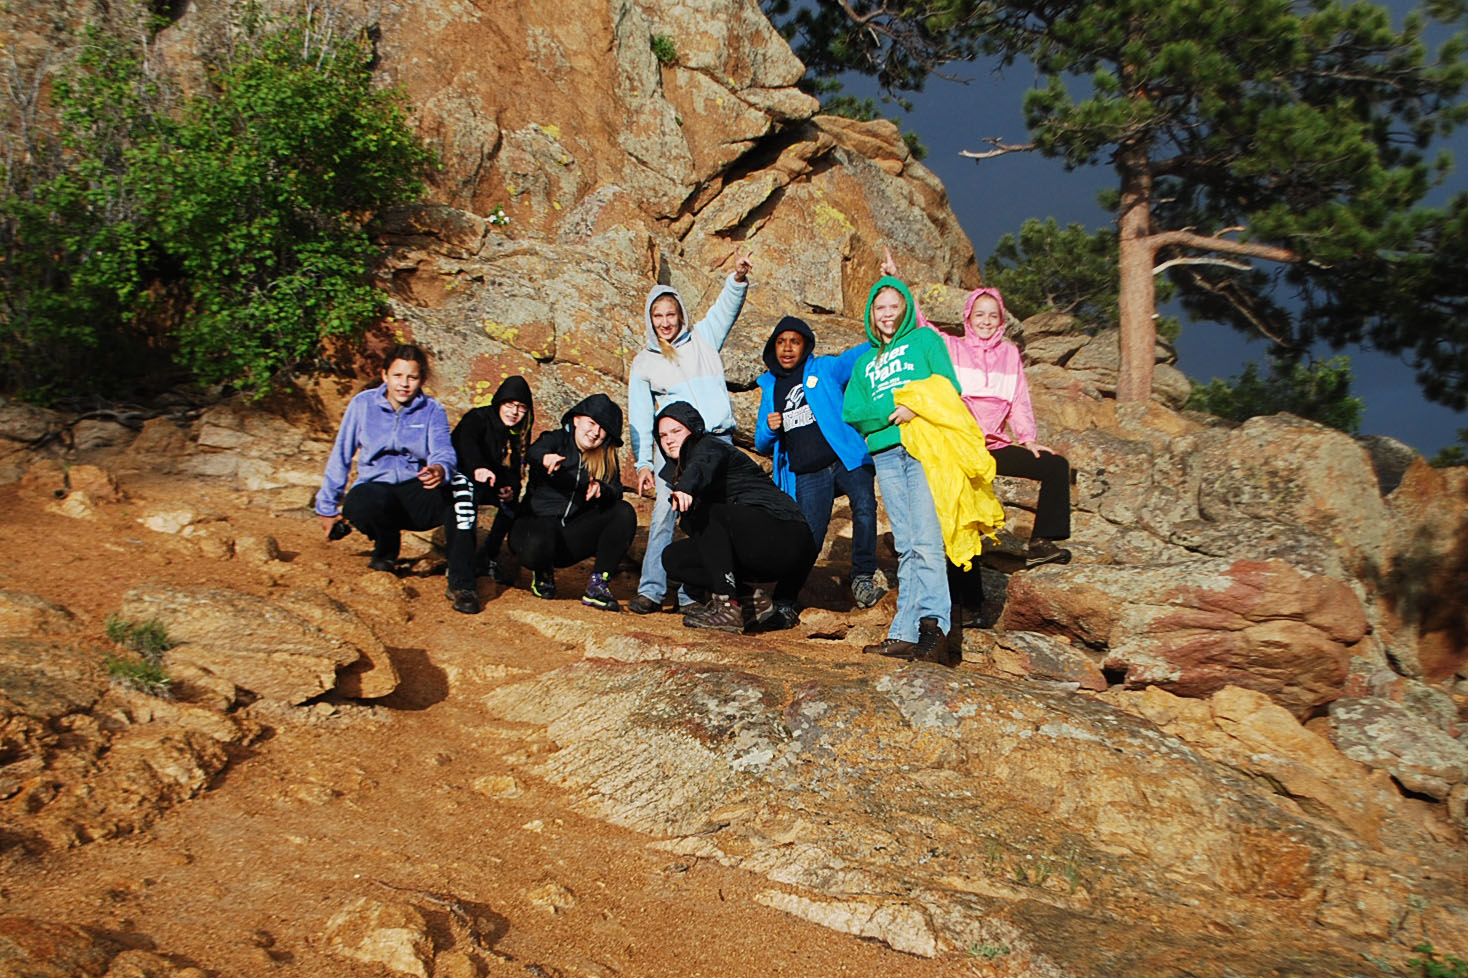 My girl scout troop exploring Rocky Mountain National Park - Estes Park, Colorado--Taking 7 girls through 5 states in 10 days is an experience I will never forget! Push yourself to live each day to the fullest.